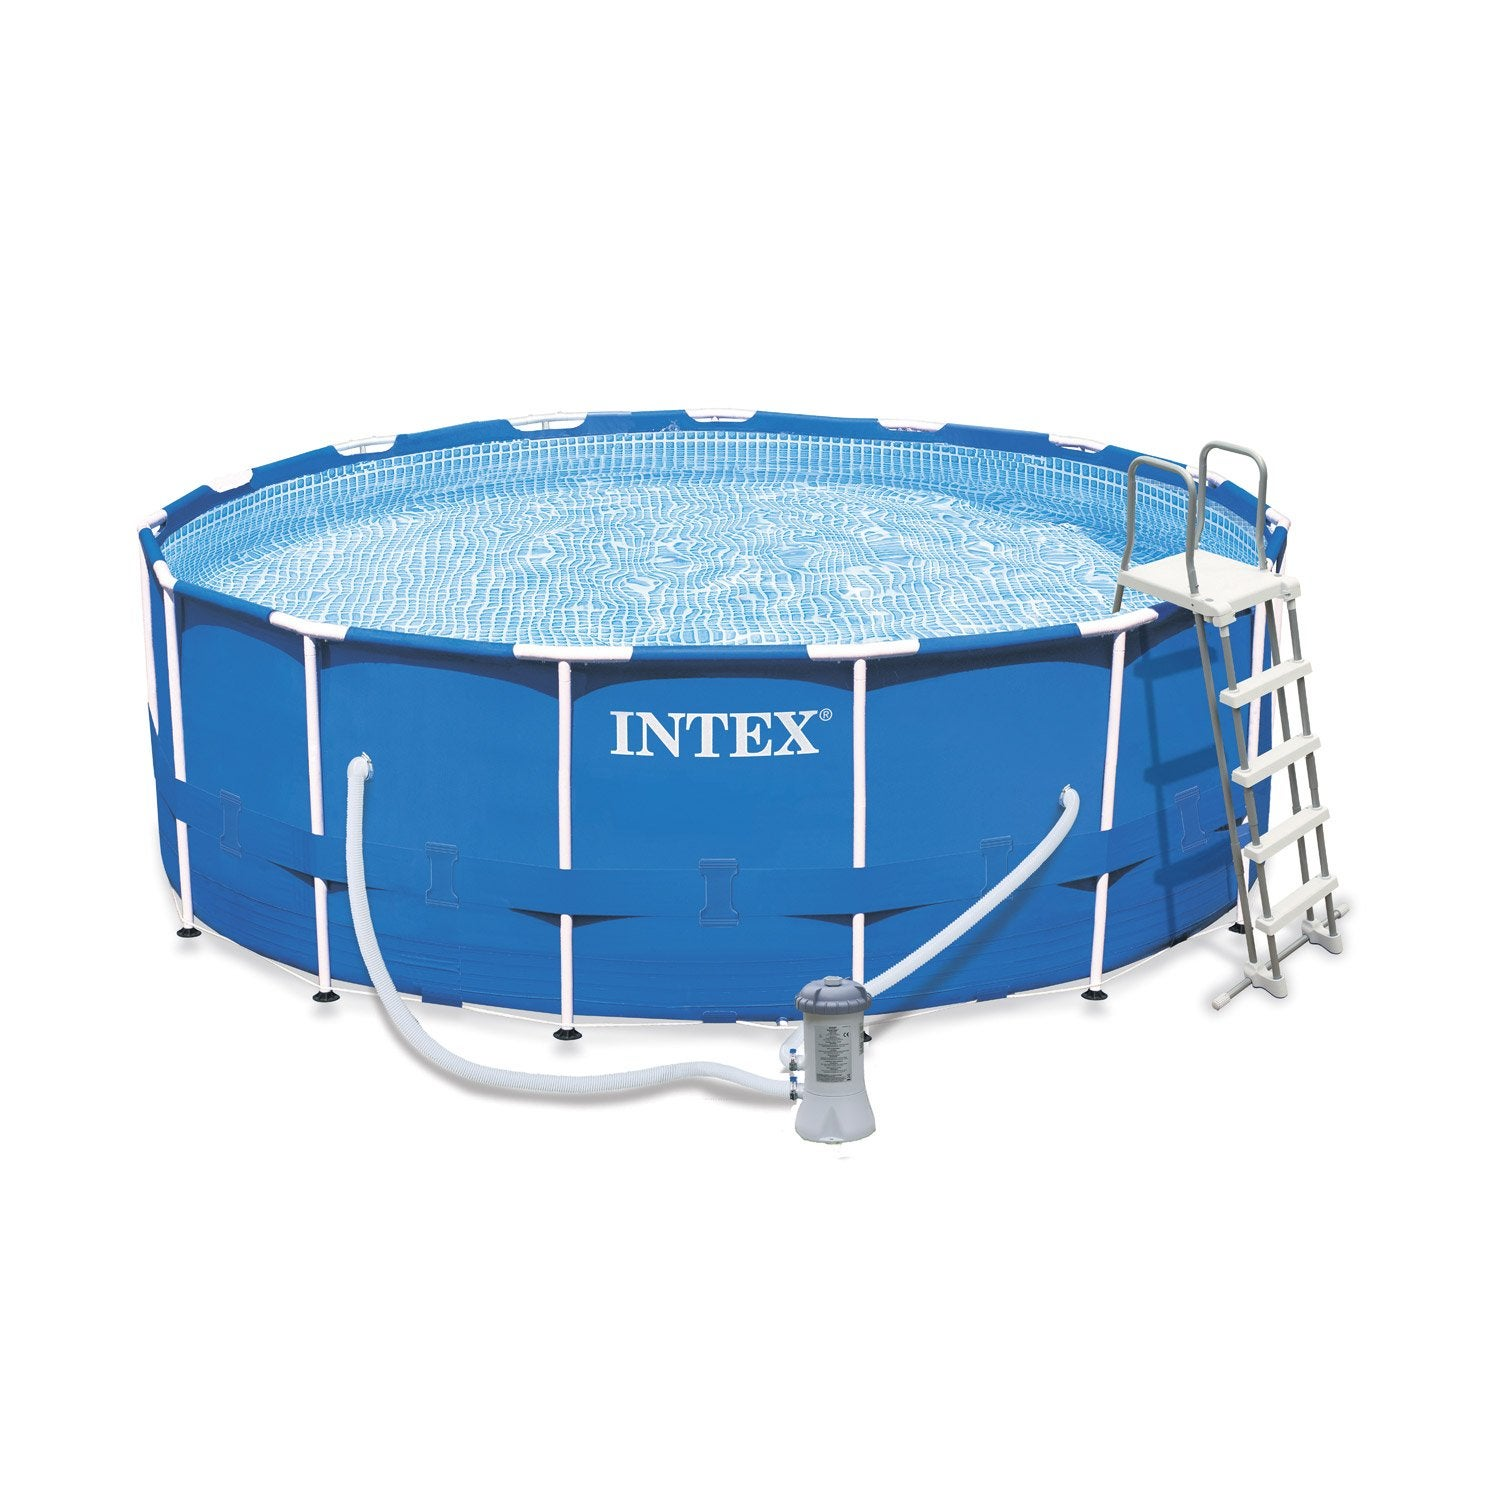 Piscine hors sol autoportante tubulaire metal frame intex for Intex piscine